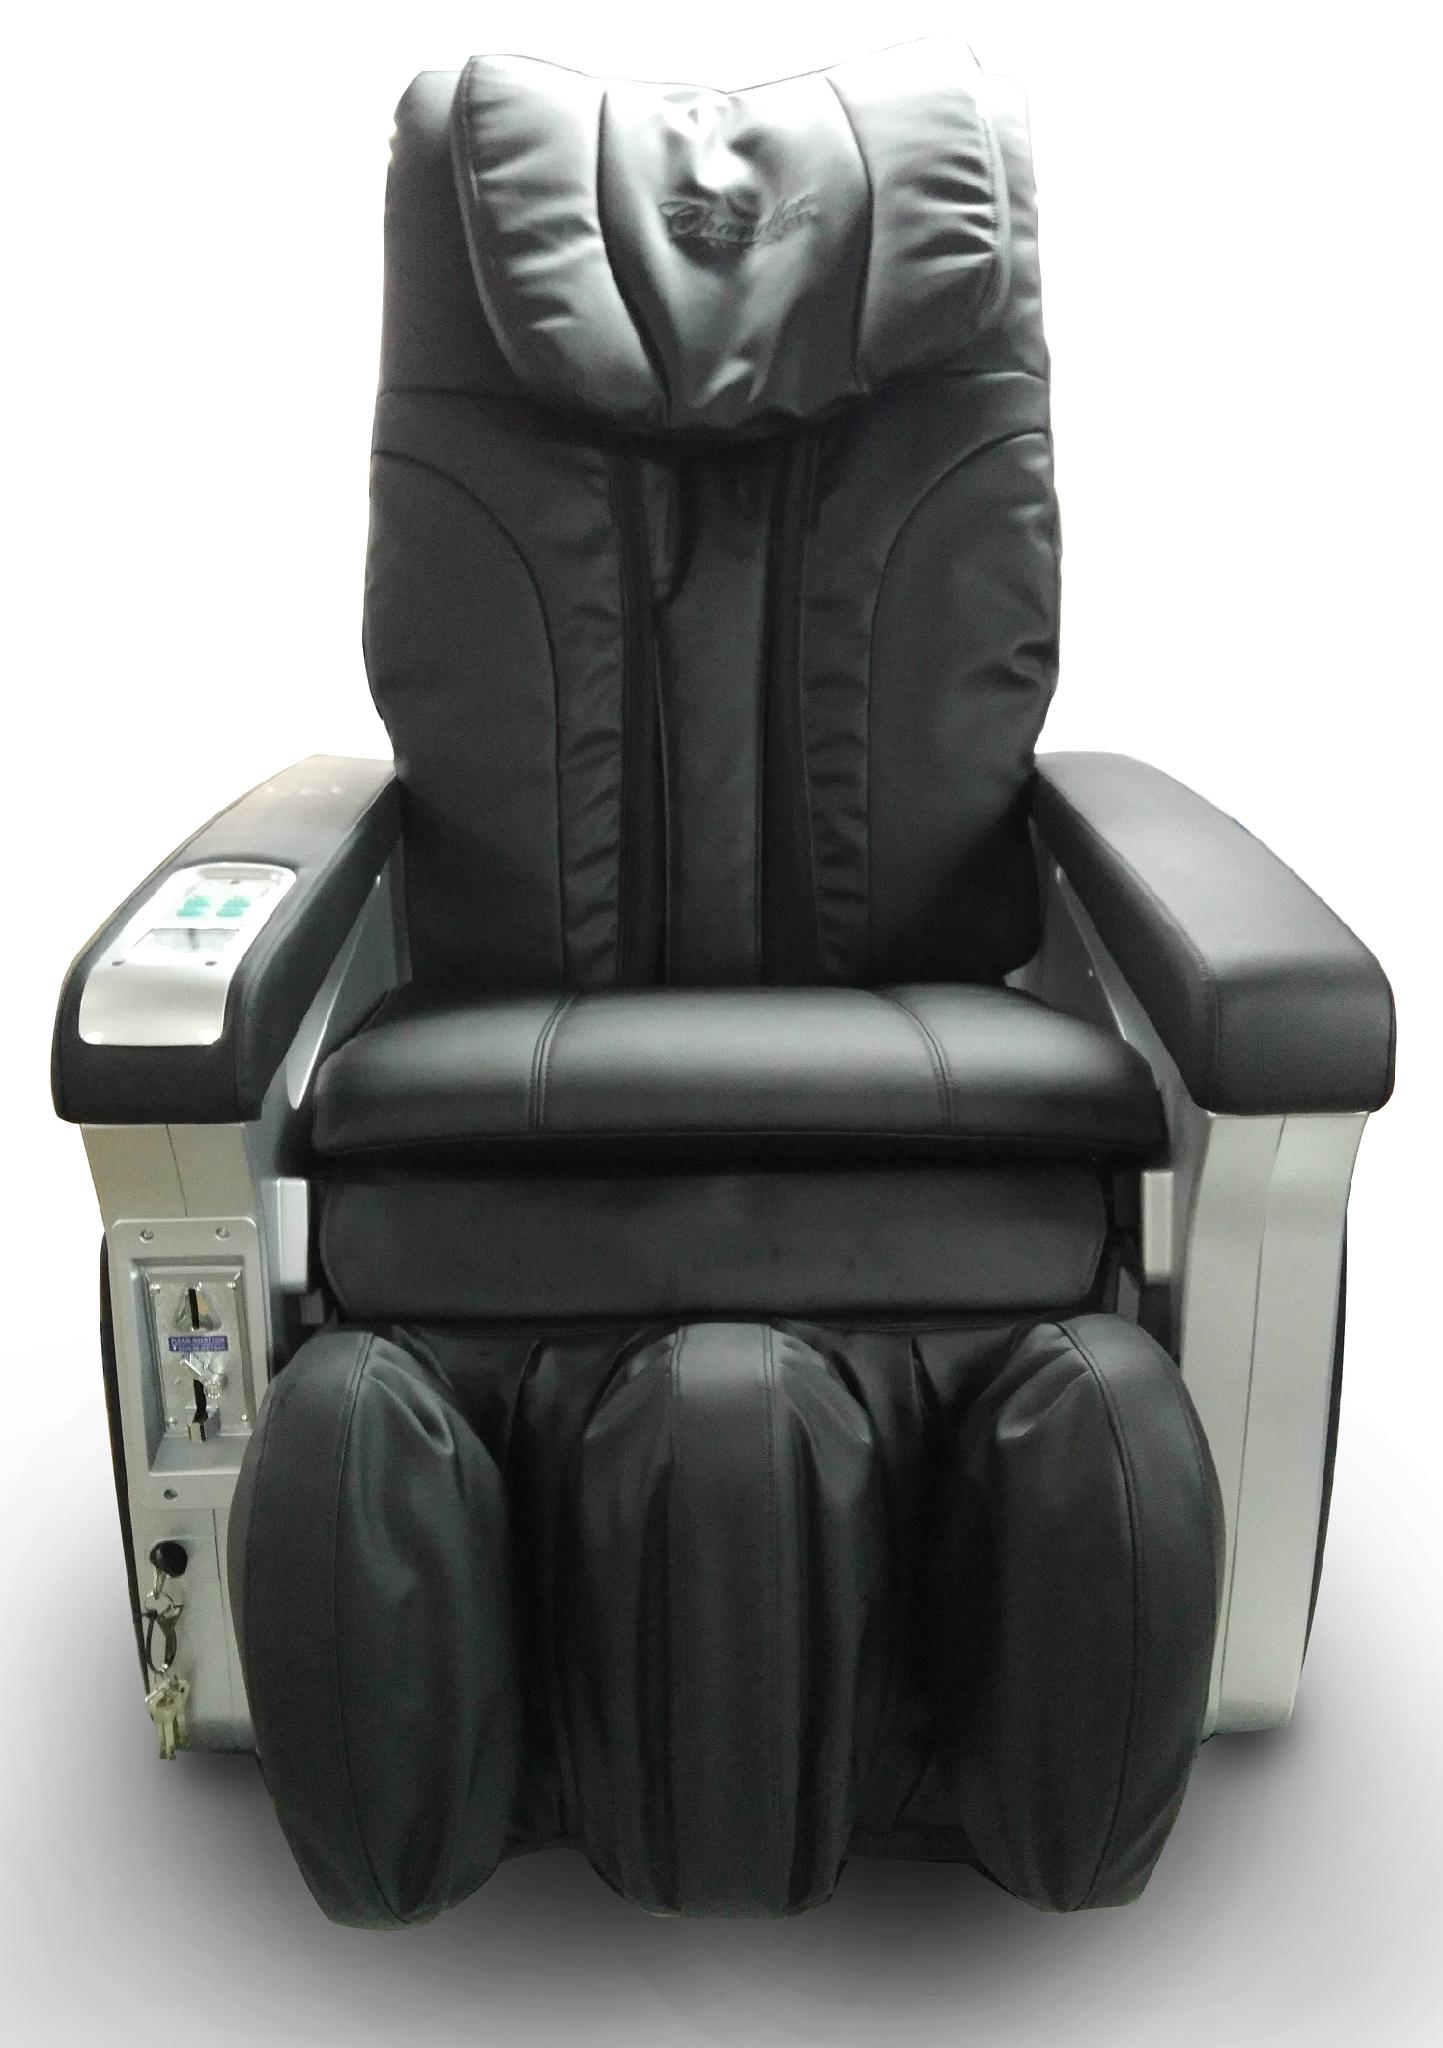 RT M05 Money operated massage chair China Manufacturer Home Use